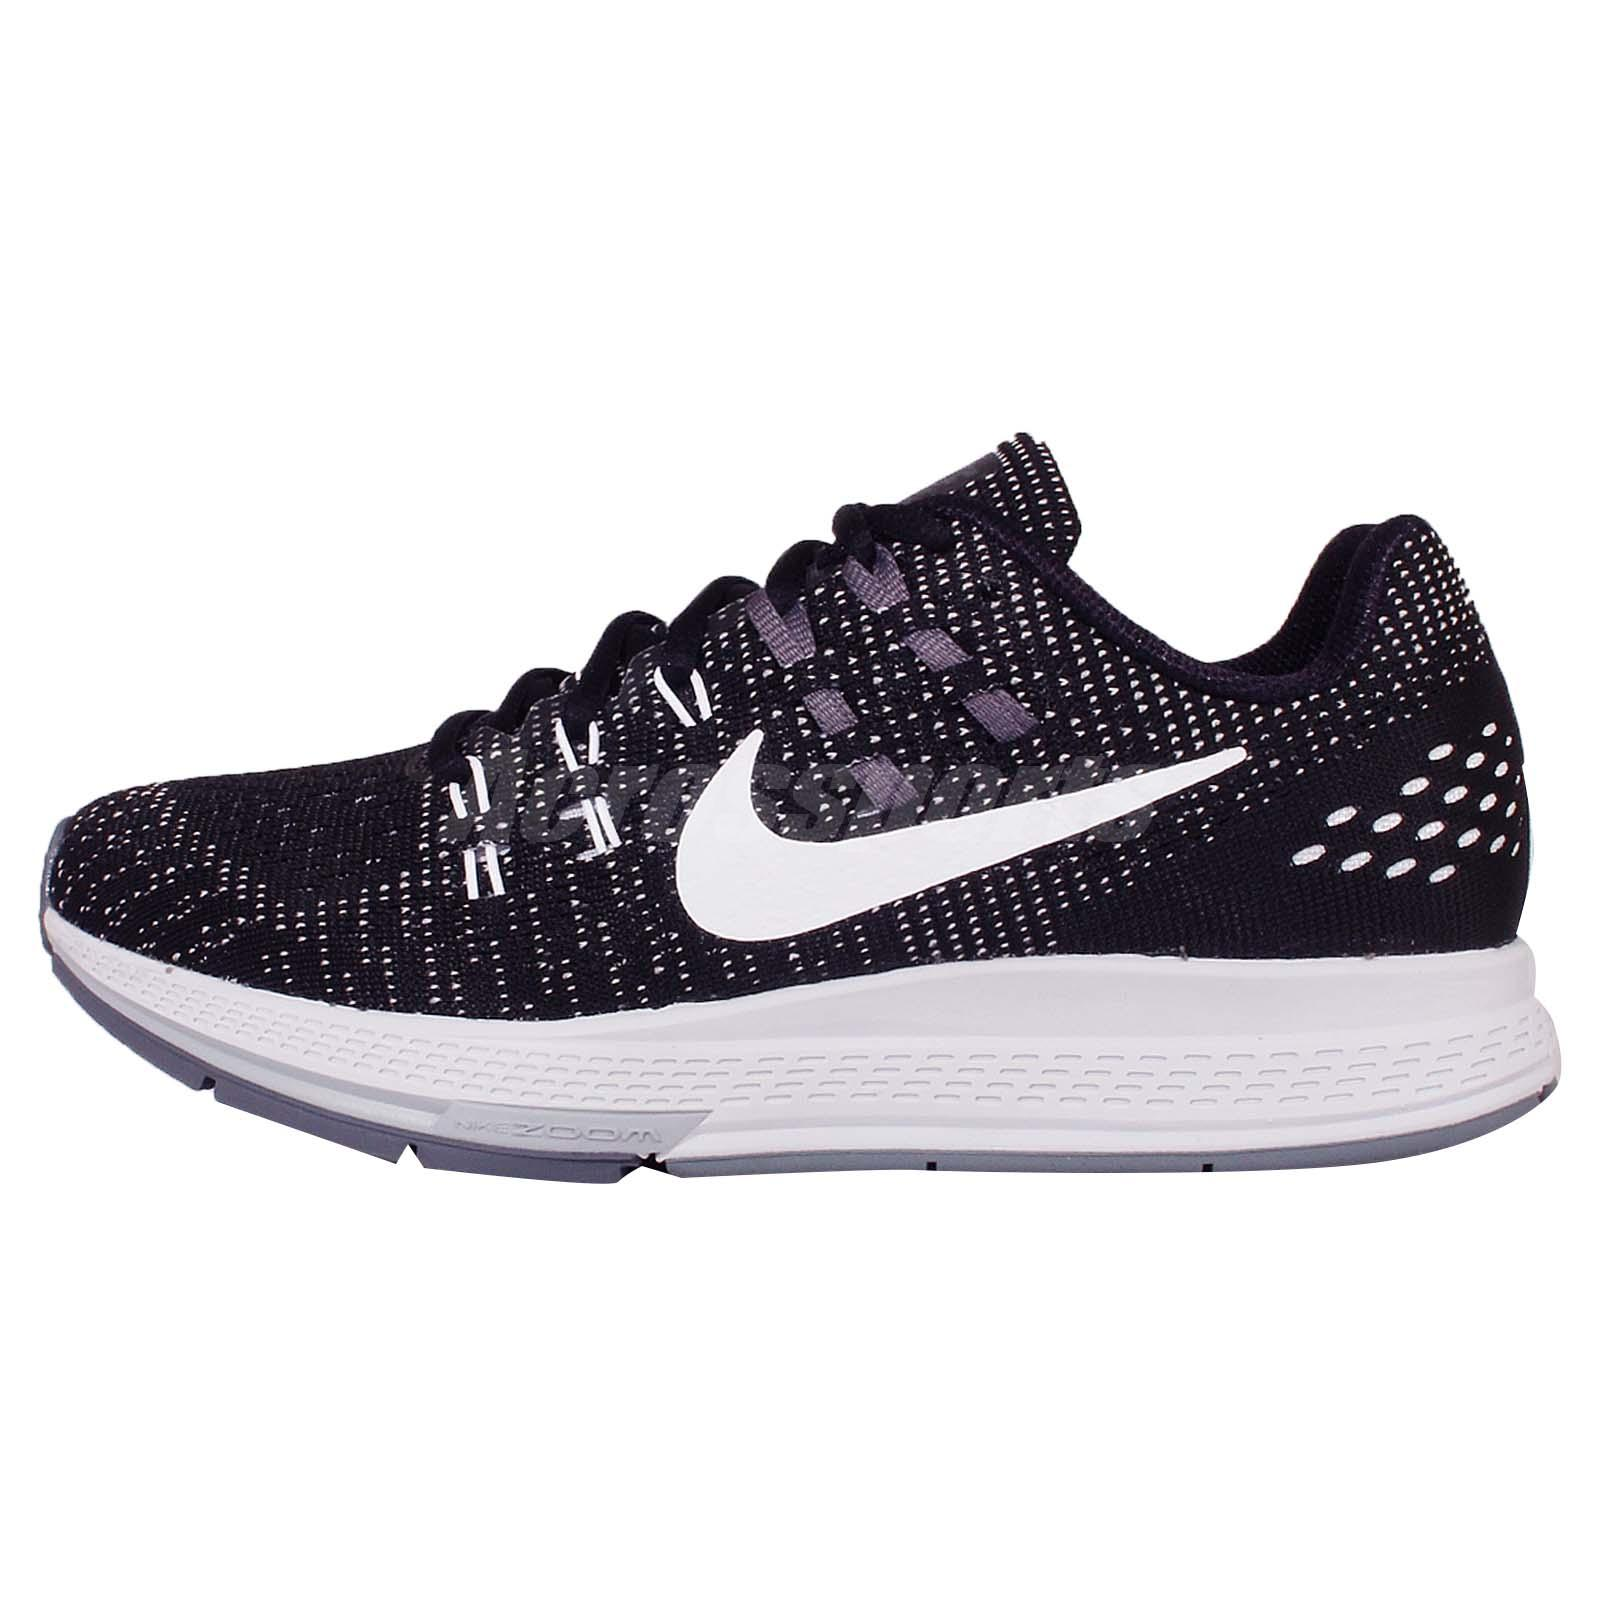 brand new 873e0 ae42c Nike Wmns Air Zoom Structure 19 Black Grey Women Running Shoe Sneaker  806584-001